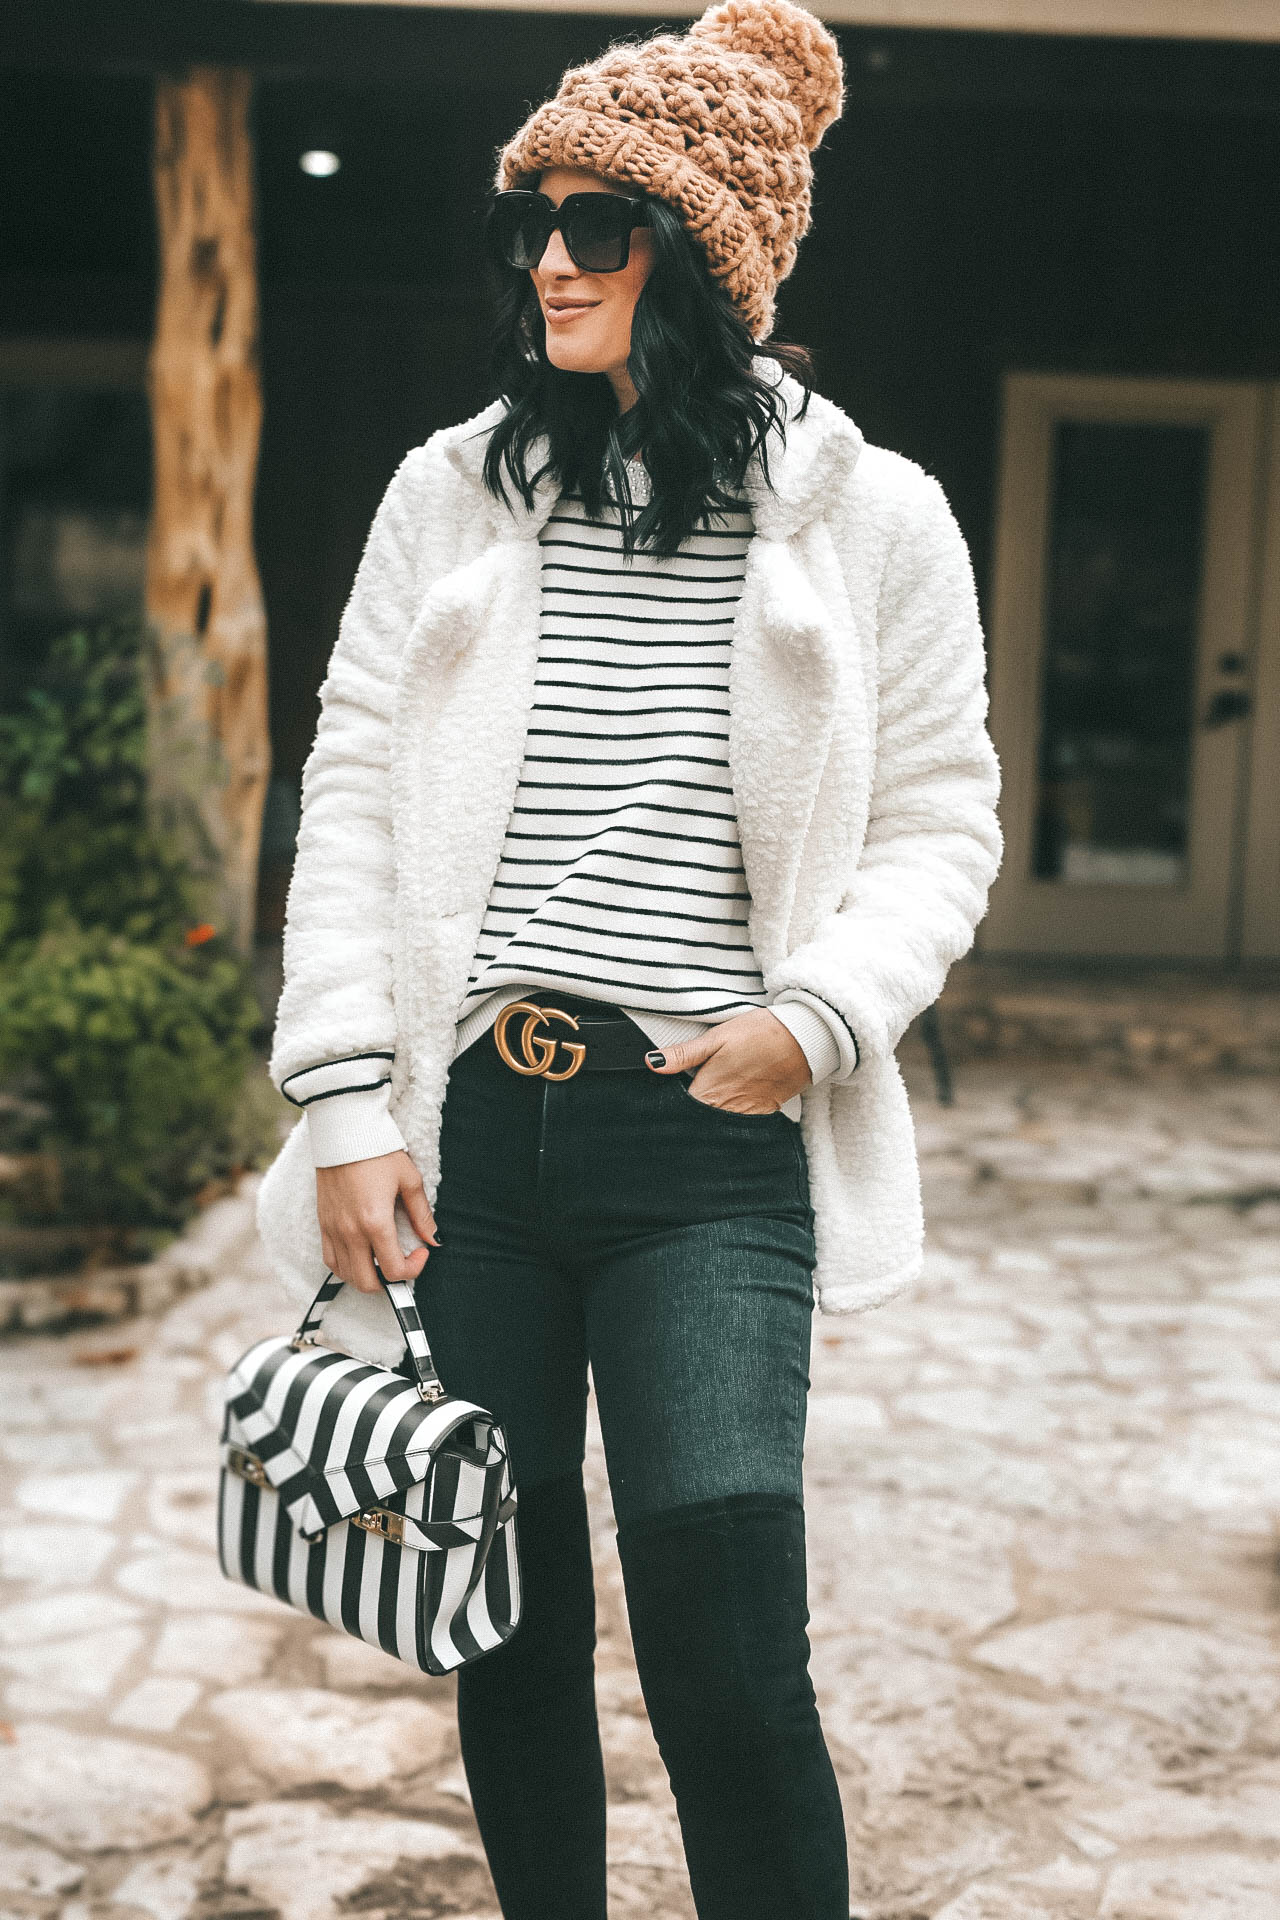 DTKAustin is sharing the most affordable beaded striped sweater from Chicwish. It is hand beaded with faux pearls and on sale for $45. Handbag is Henri Bendel, Over the Knee Boots Goodnight Macaroon, Teddy Bear coat is Goodnight Macaroon, Knit beanie is Abercrombie. | Knit sweater for winter | how to style a striped sweater | How to style stripes || #fashion #style #womensoutfit #womensfashion #stripedsweater #knit #knitsweater #winterstyle #streetstyle #winterfashion #dtkaustin | How to style a striped sweater featured by top Austin fashion blog, Dressed to Kill: image of a woman wearing a Goodnight Macaroon teddy bear coat, a Chicwish striped sweater, Levi's skinny jeans, Goodnight Macaroon over the knee boots, Henri Bendel satchel, Gucci leather belt, Nordstrom Pompom beanie